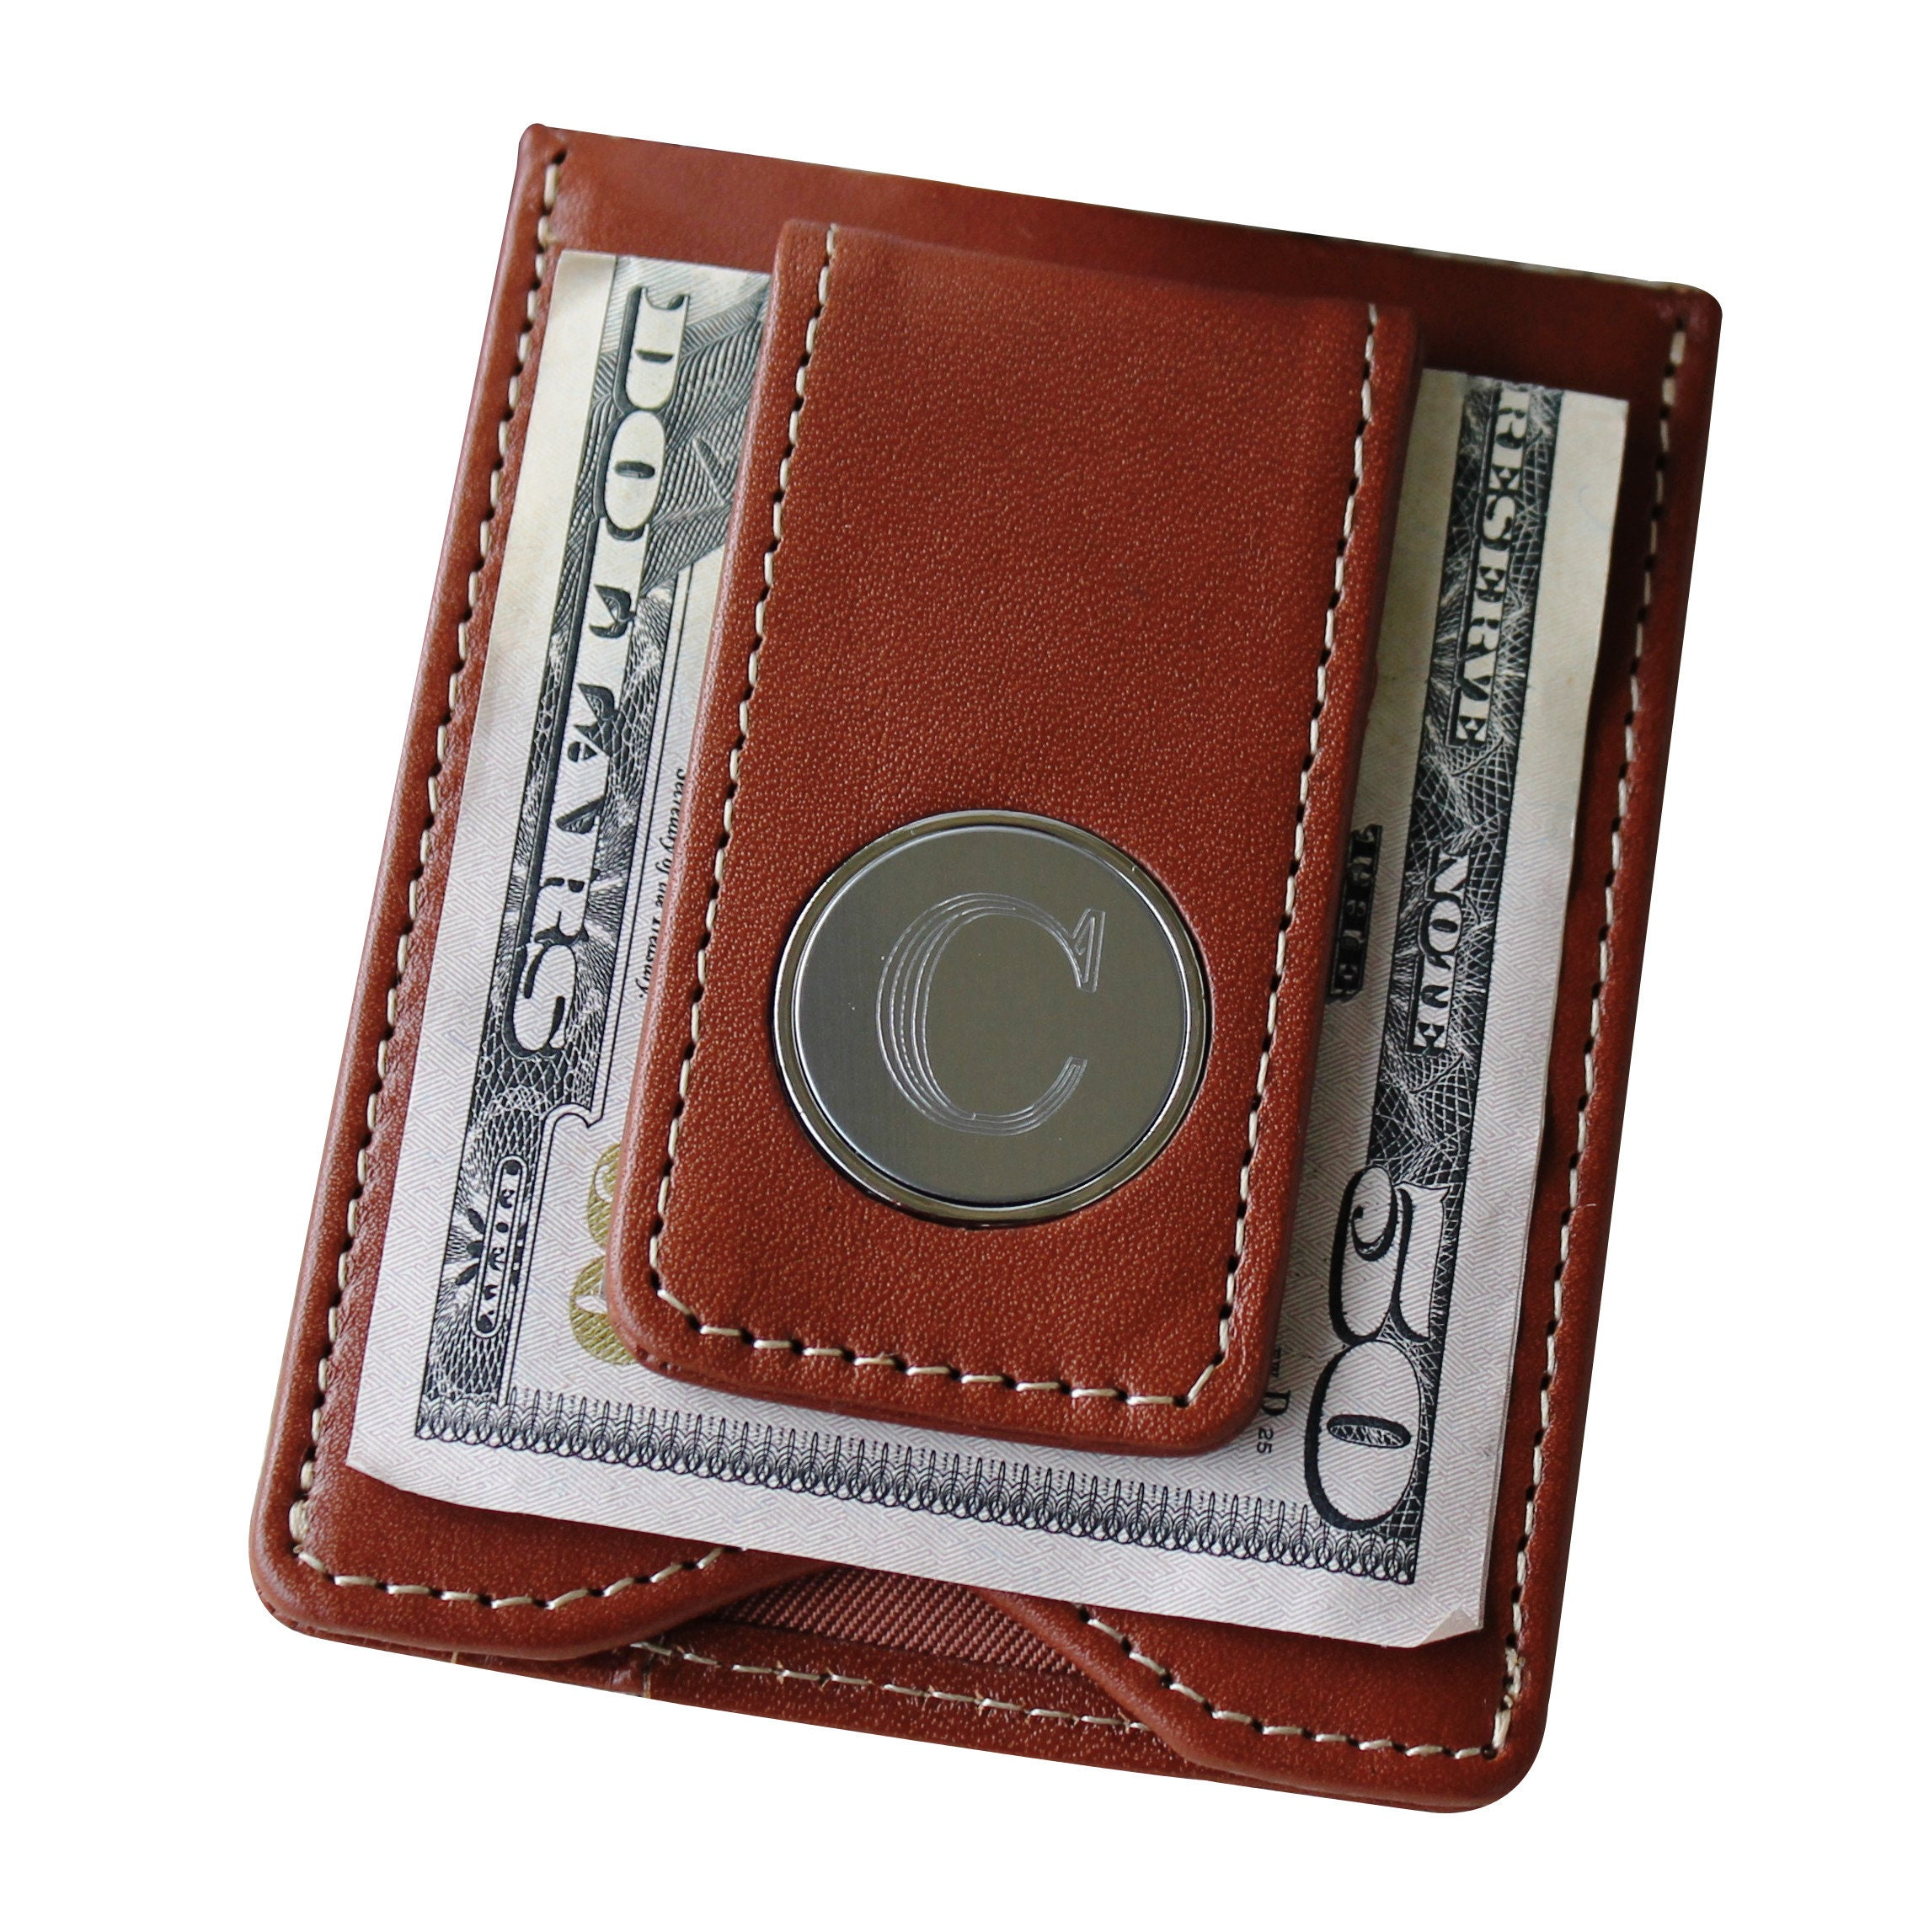 Money Clip Wallet for Men, Wallet Money Clip Men, Engraved Money Clip Wallet, Groomsmen Money Clip, Leather Money Clip and Card Holder